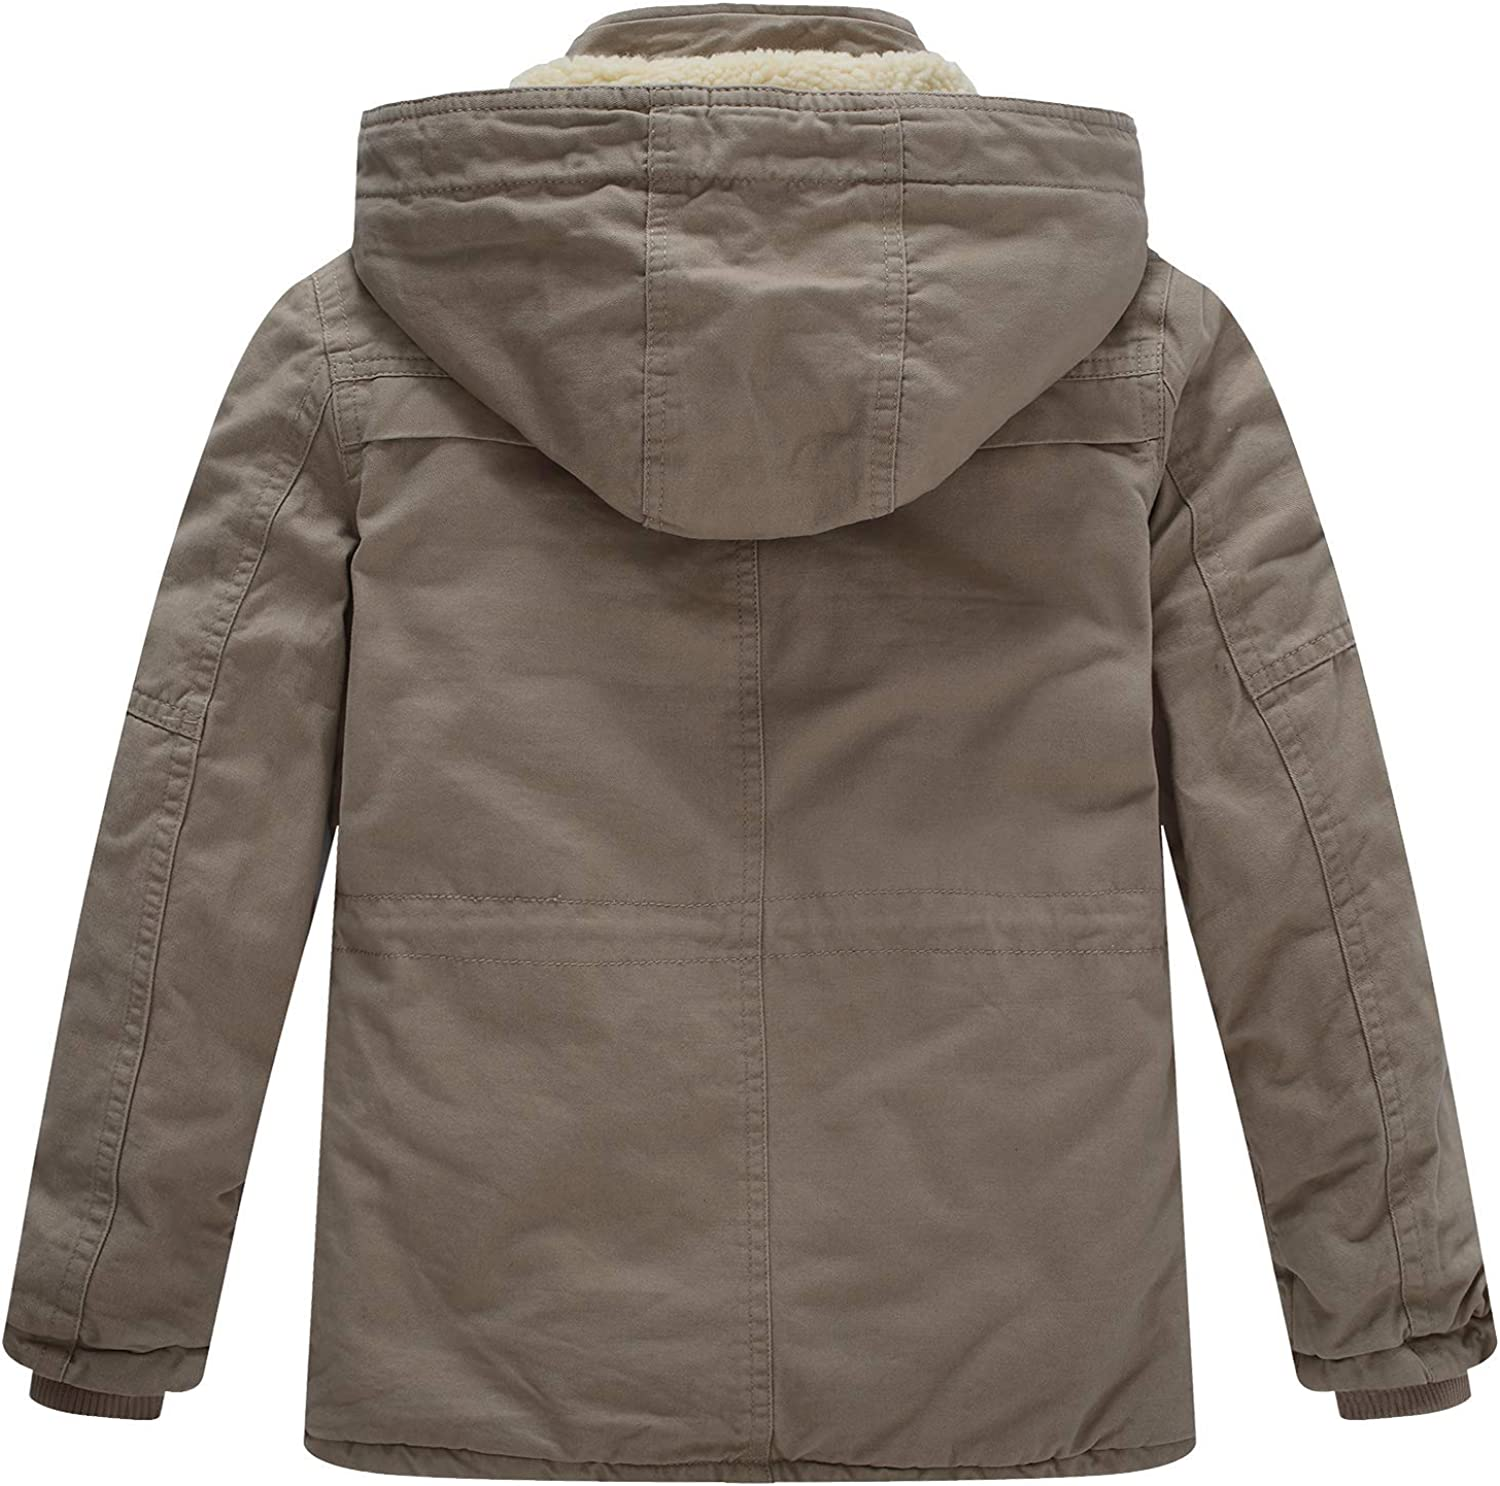 WenVen Boys /& Girls Cotton Jackets with Removable Hood